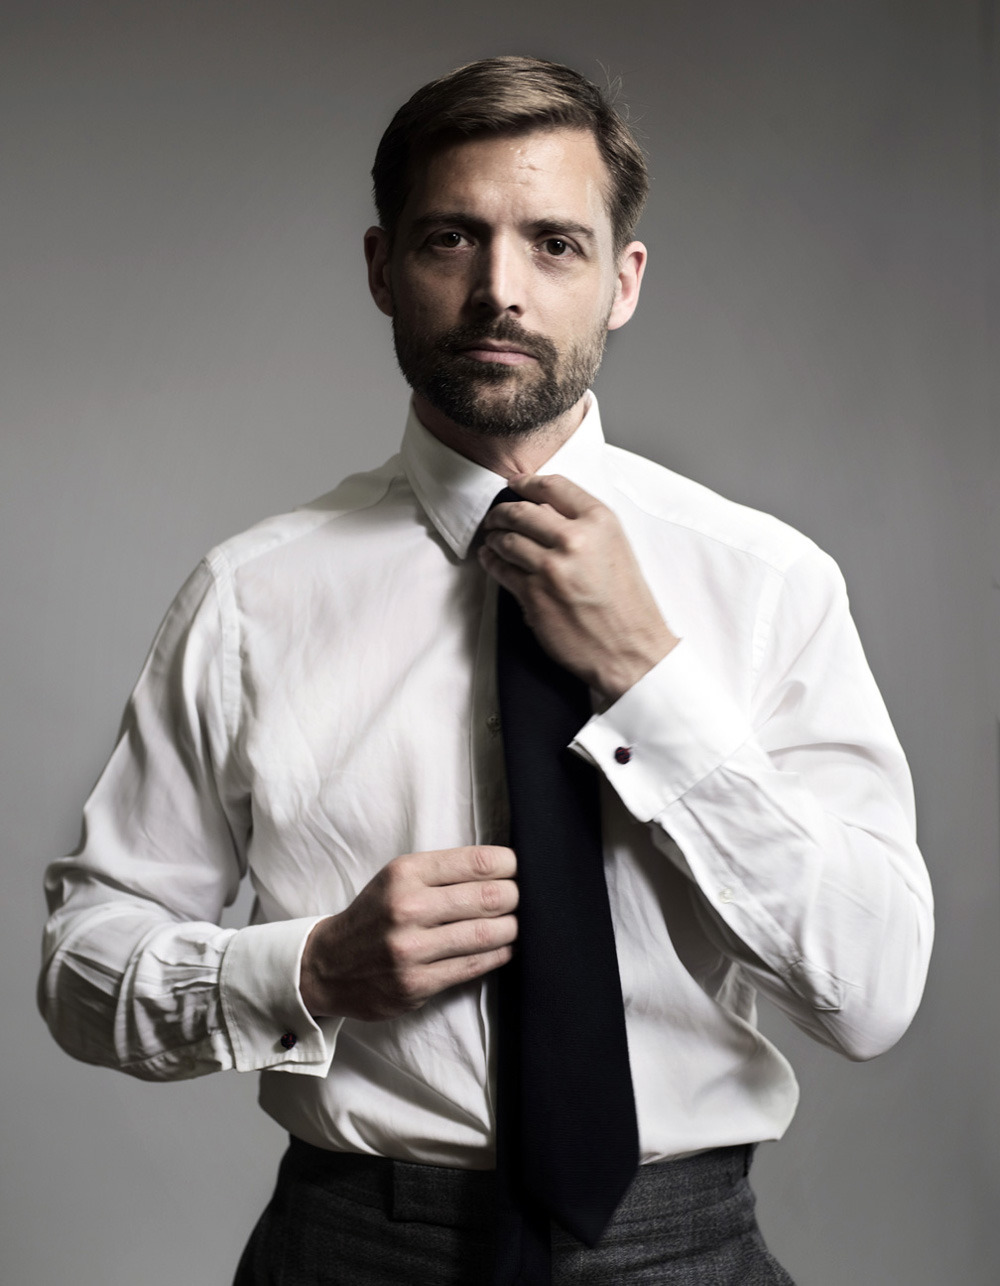 Better Ways to Wear a White Dress Shirt